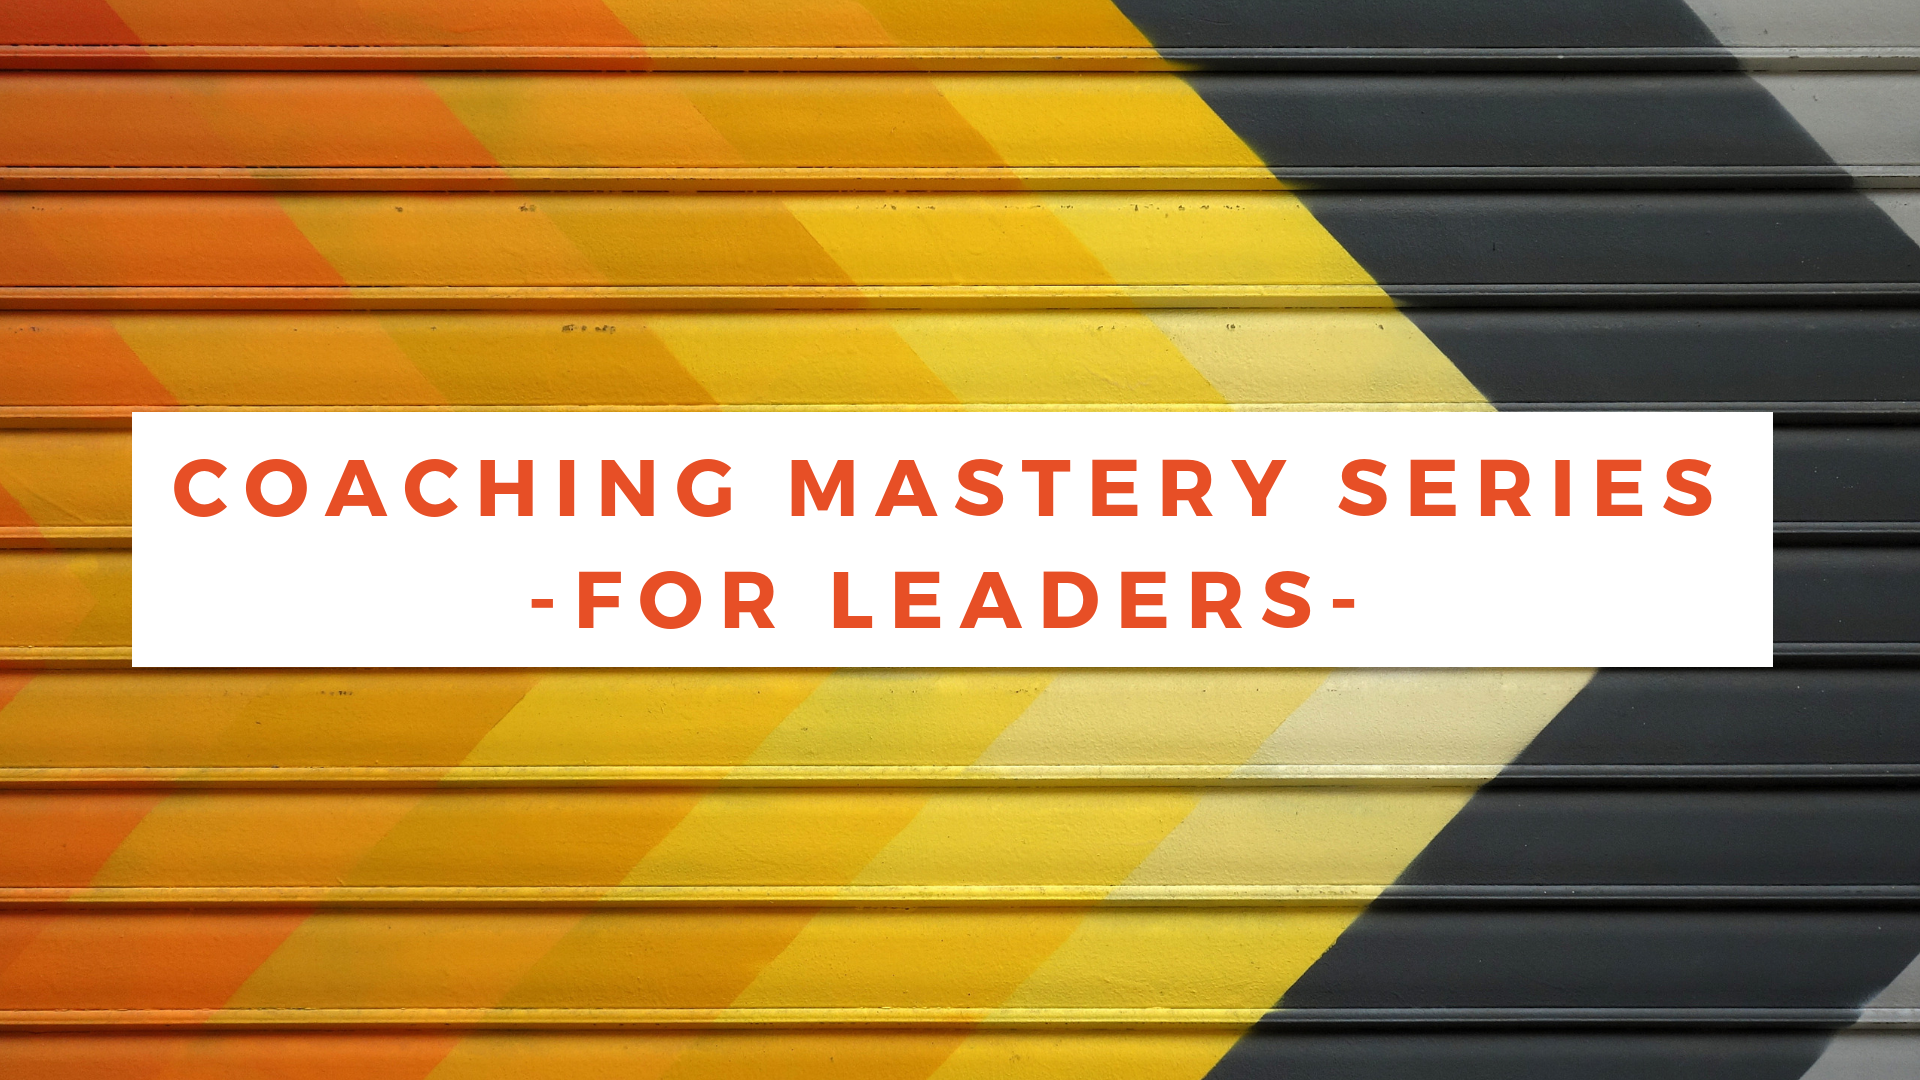 ManagersWho Coach - Coaching Mastery Program for Leaders